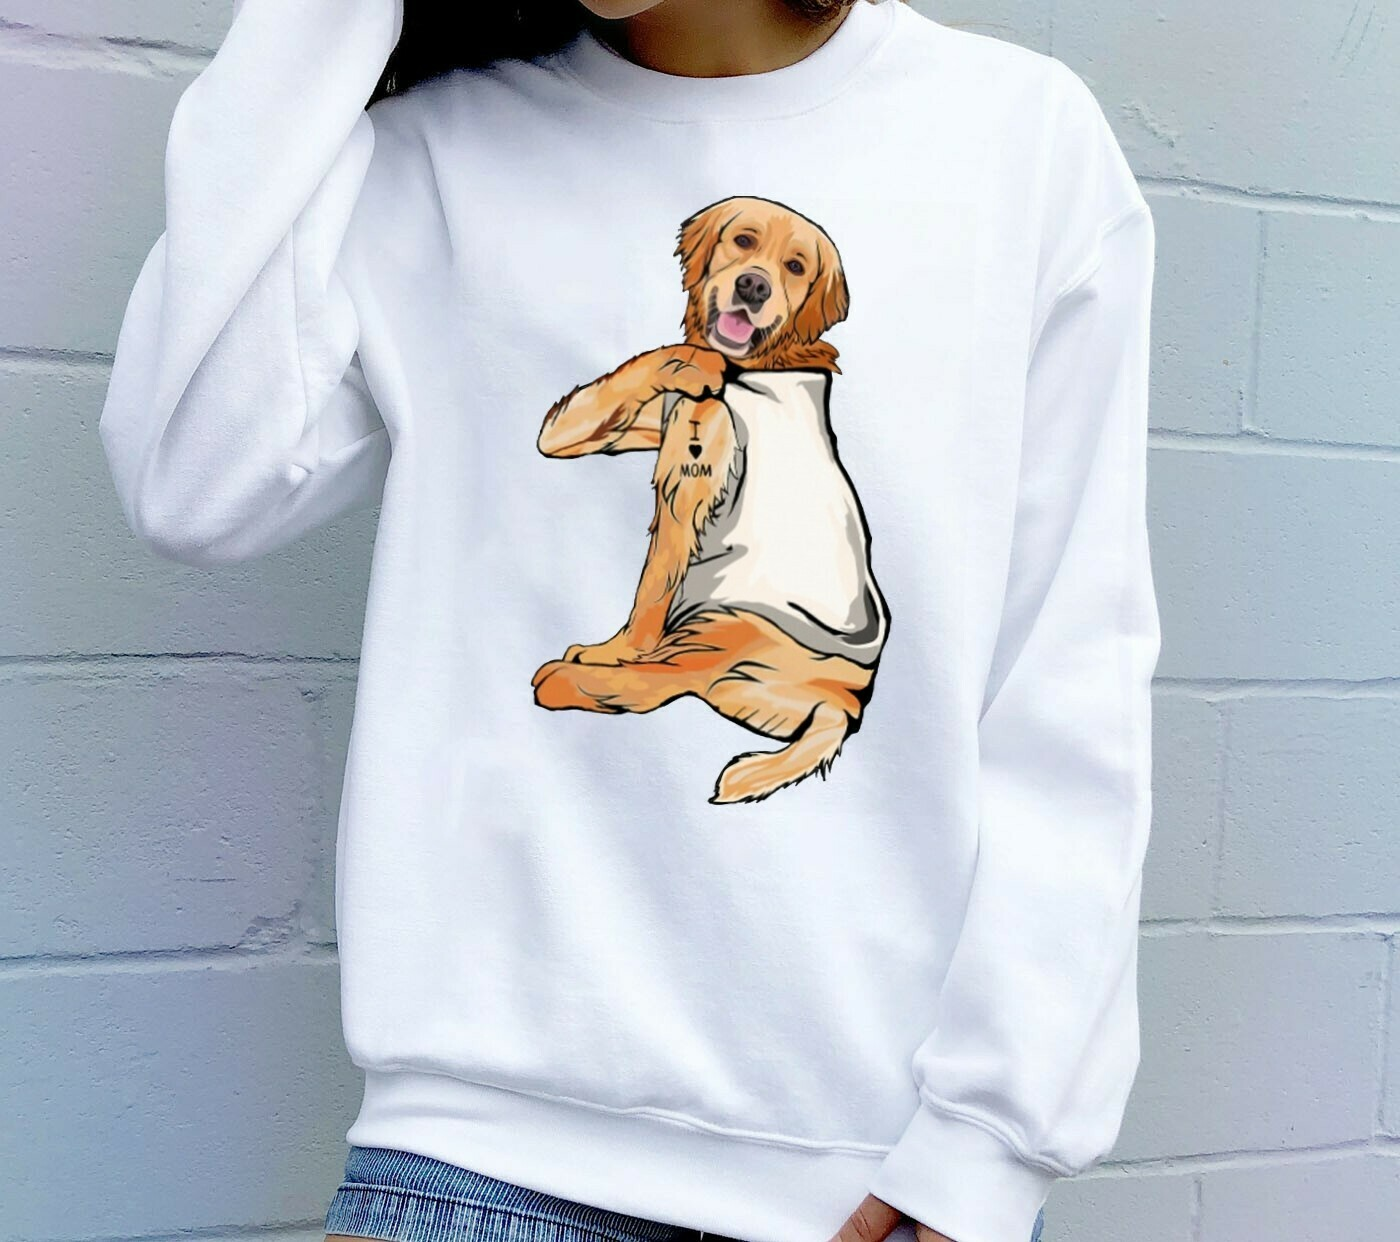 Golden Retriever Dog Tattoos I Love Mom Funny Shirt T-Shirt Hoodie Sweatshirt Sweater Tee Kids Youth Gifts Jolly Family Gifts